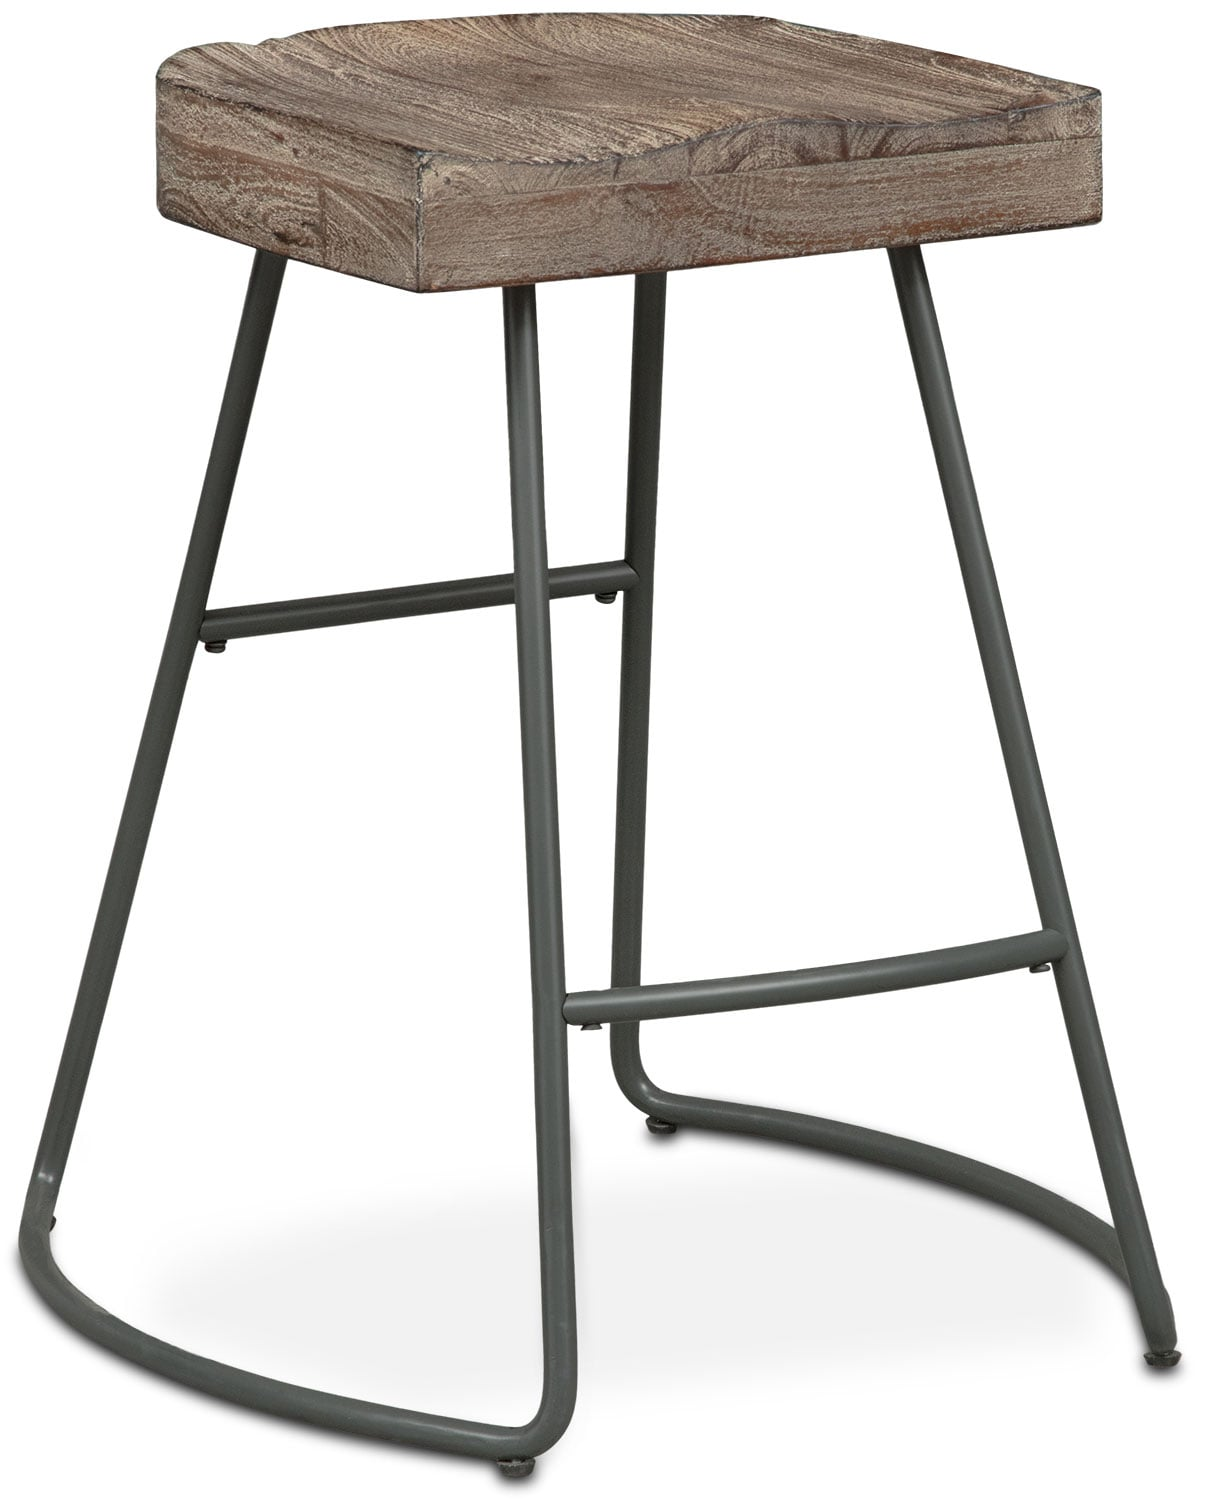 Counter Height Wood Stools : Foundry Counter-Height Stool - Distressed Wood American Signature ...